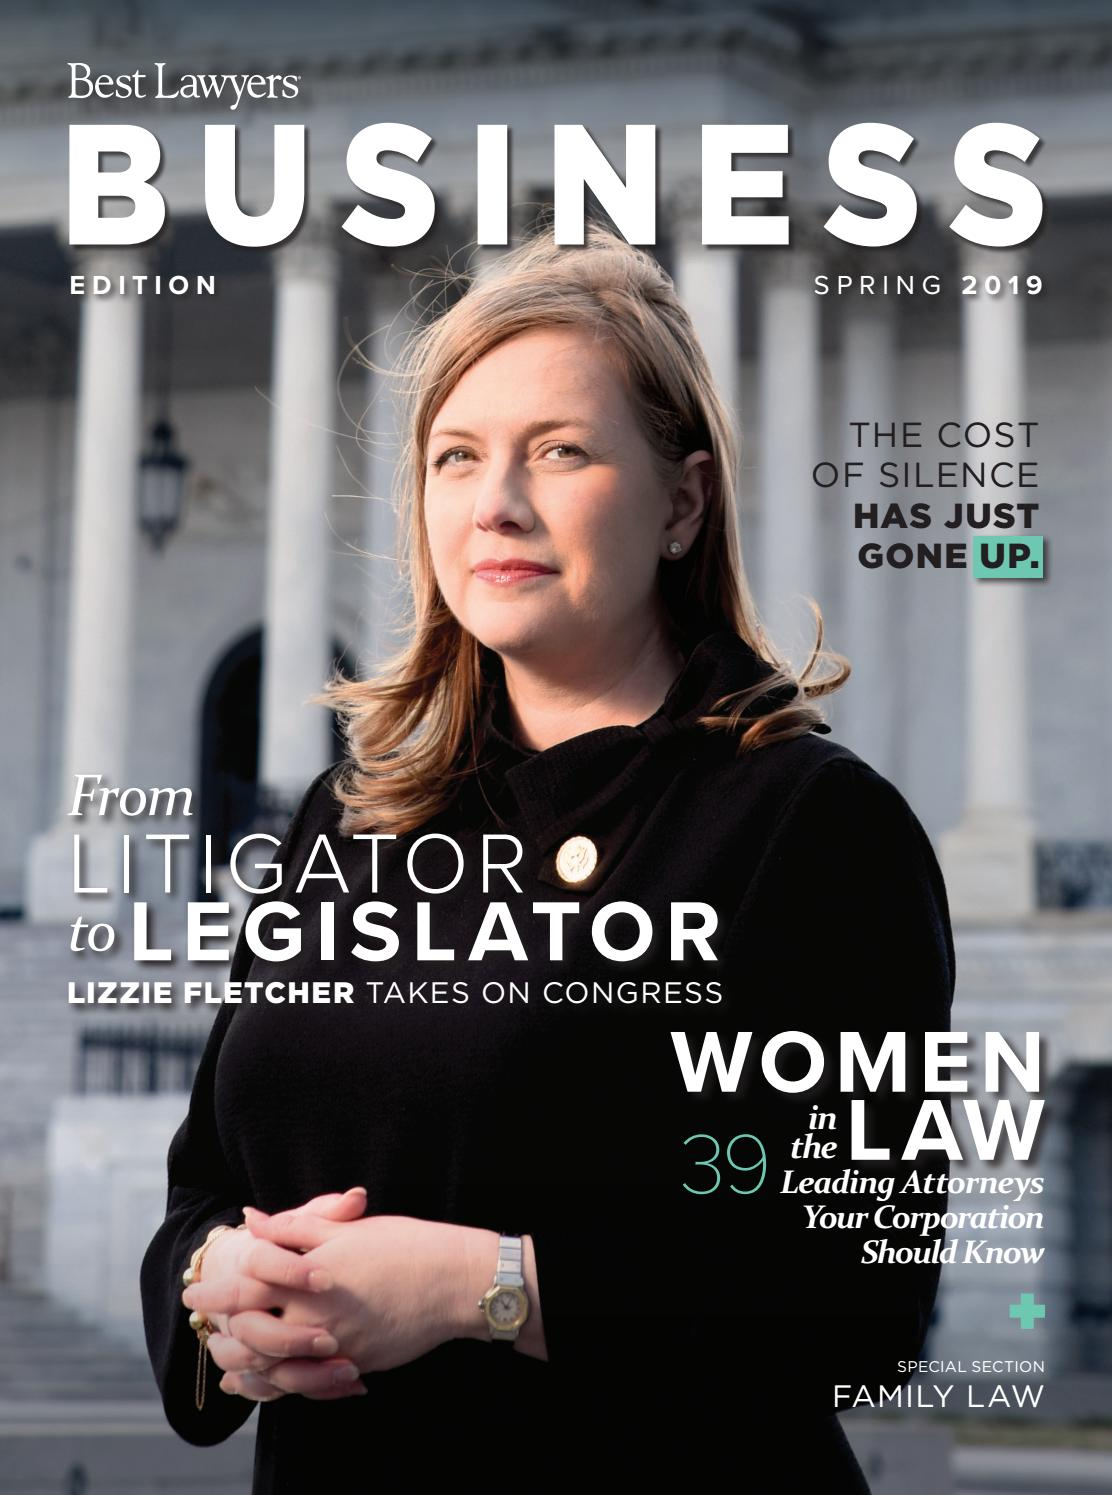 Best Lawyers Spring Business Edition 2019 By Best Lawyers Issuu